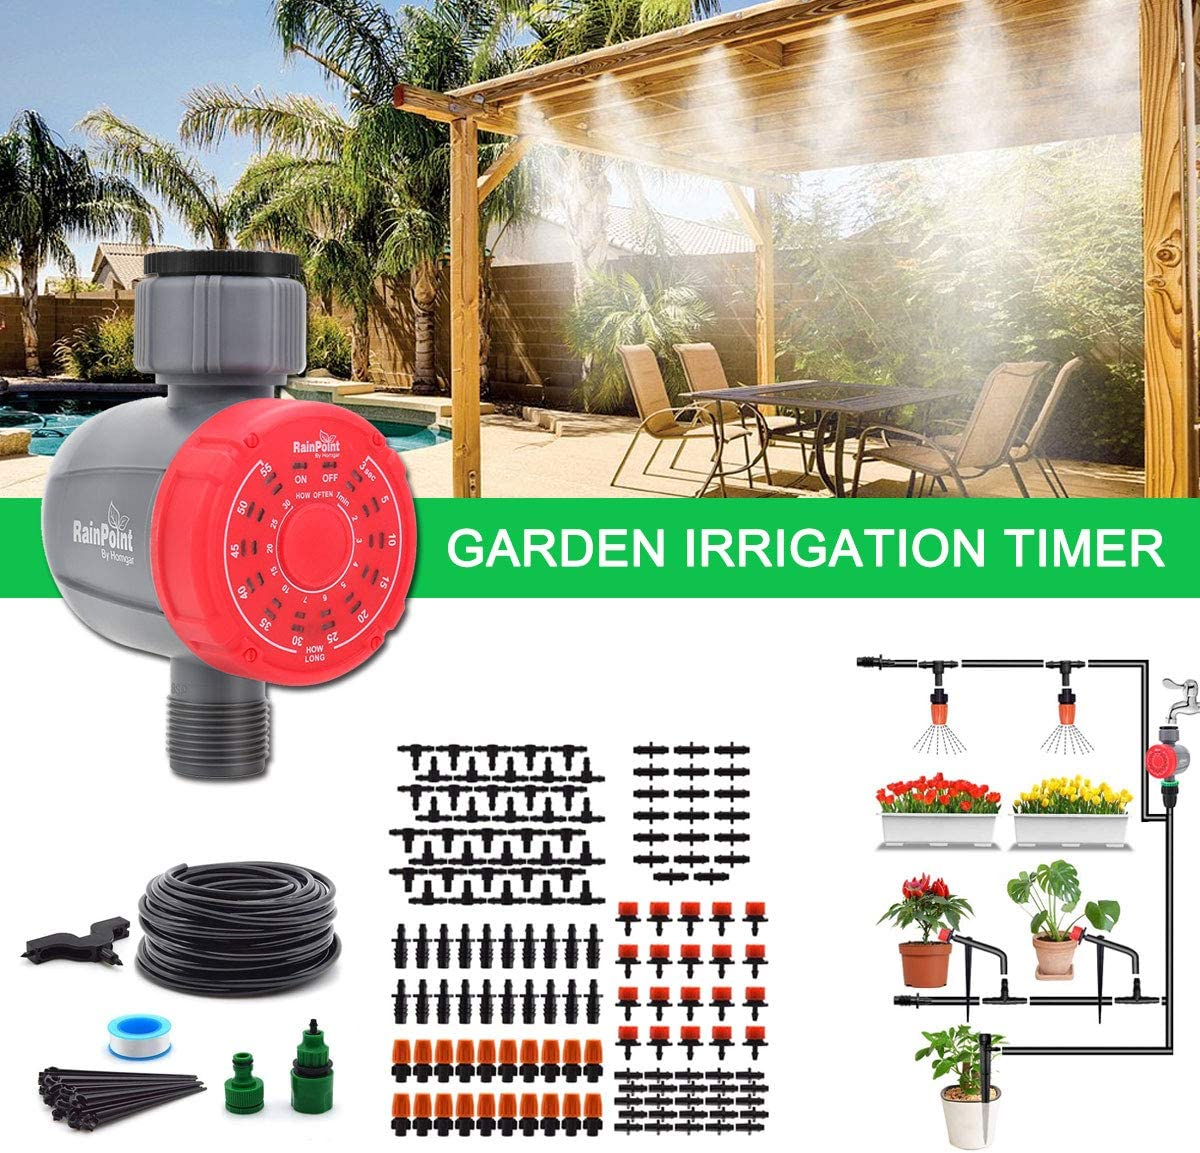 DricRoda Digital Watering Hose Timer, Programmable Watering Timer, Automatic Irrigation Hose Faucet Timer Irrigation System Controller for Greenhouse Cooling, Gardening (Red): Home & Kitchen